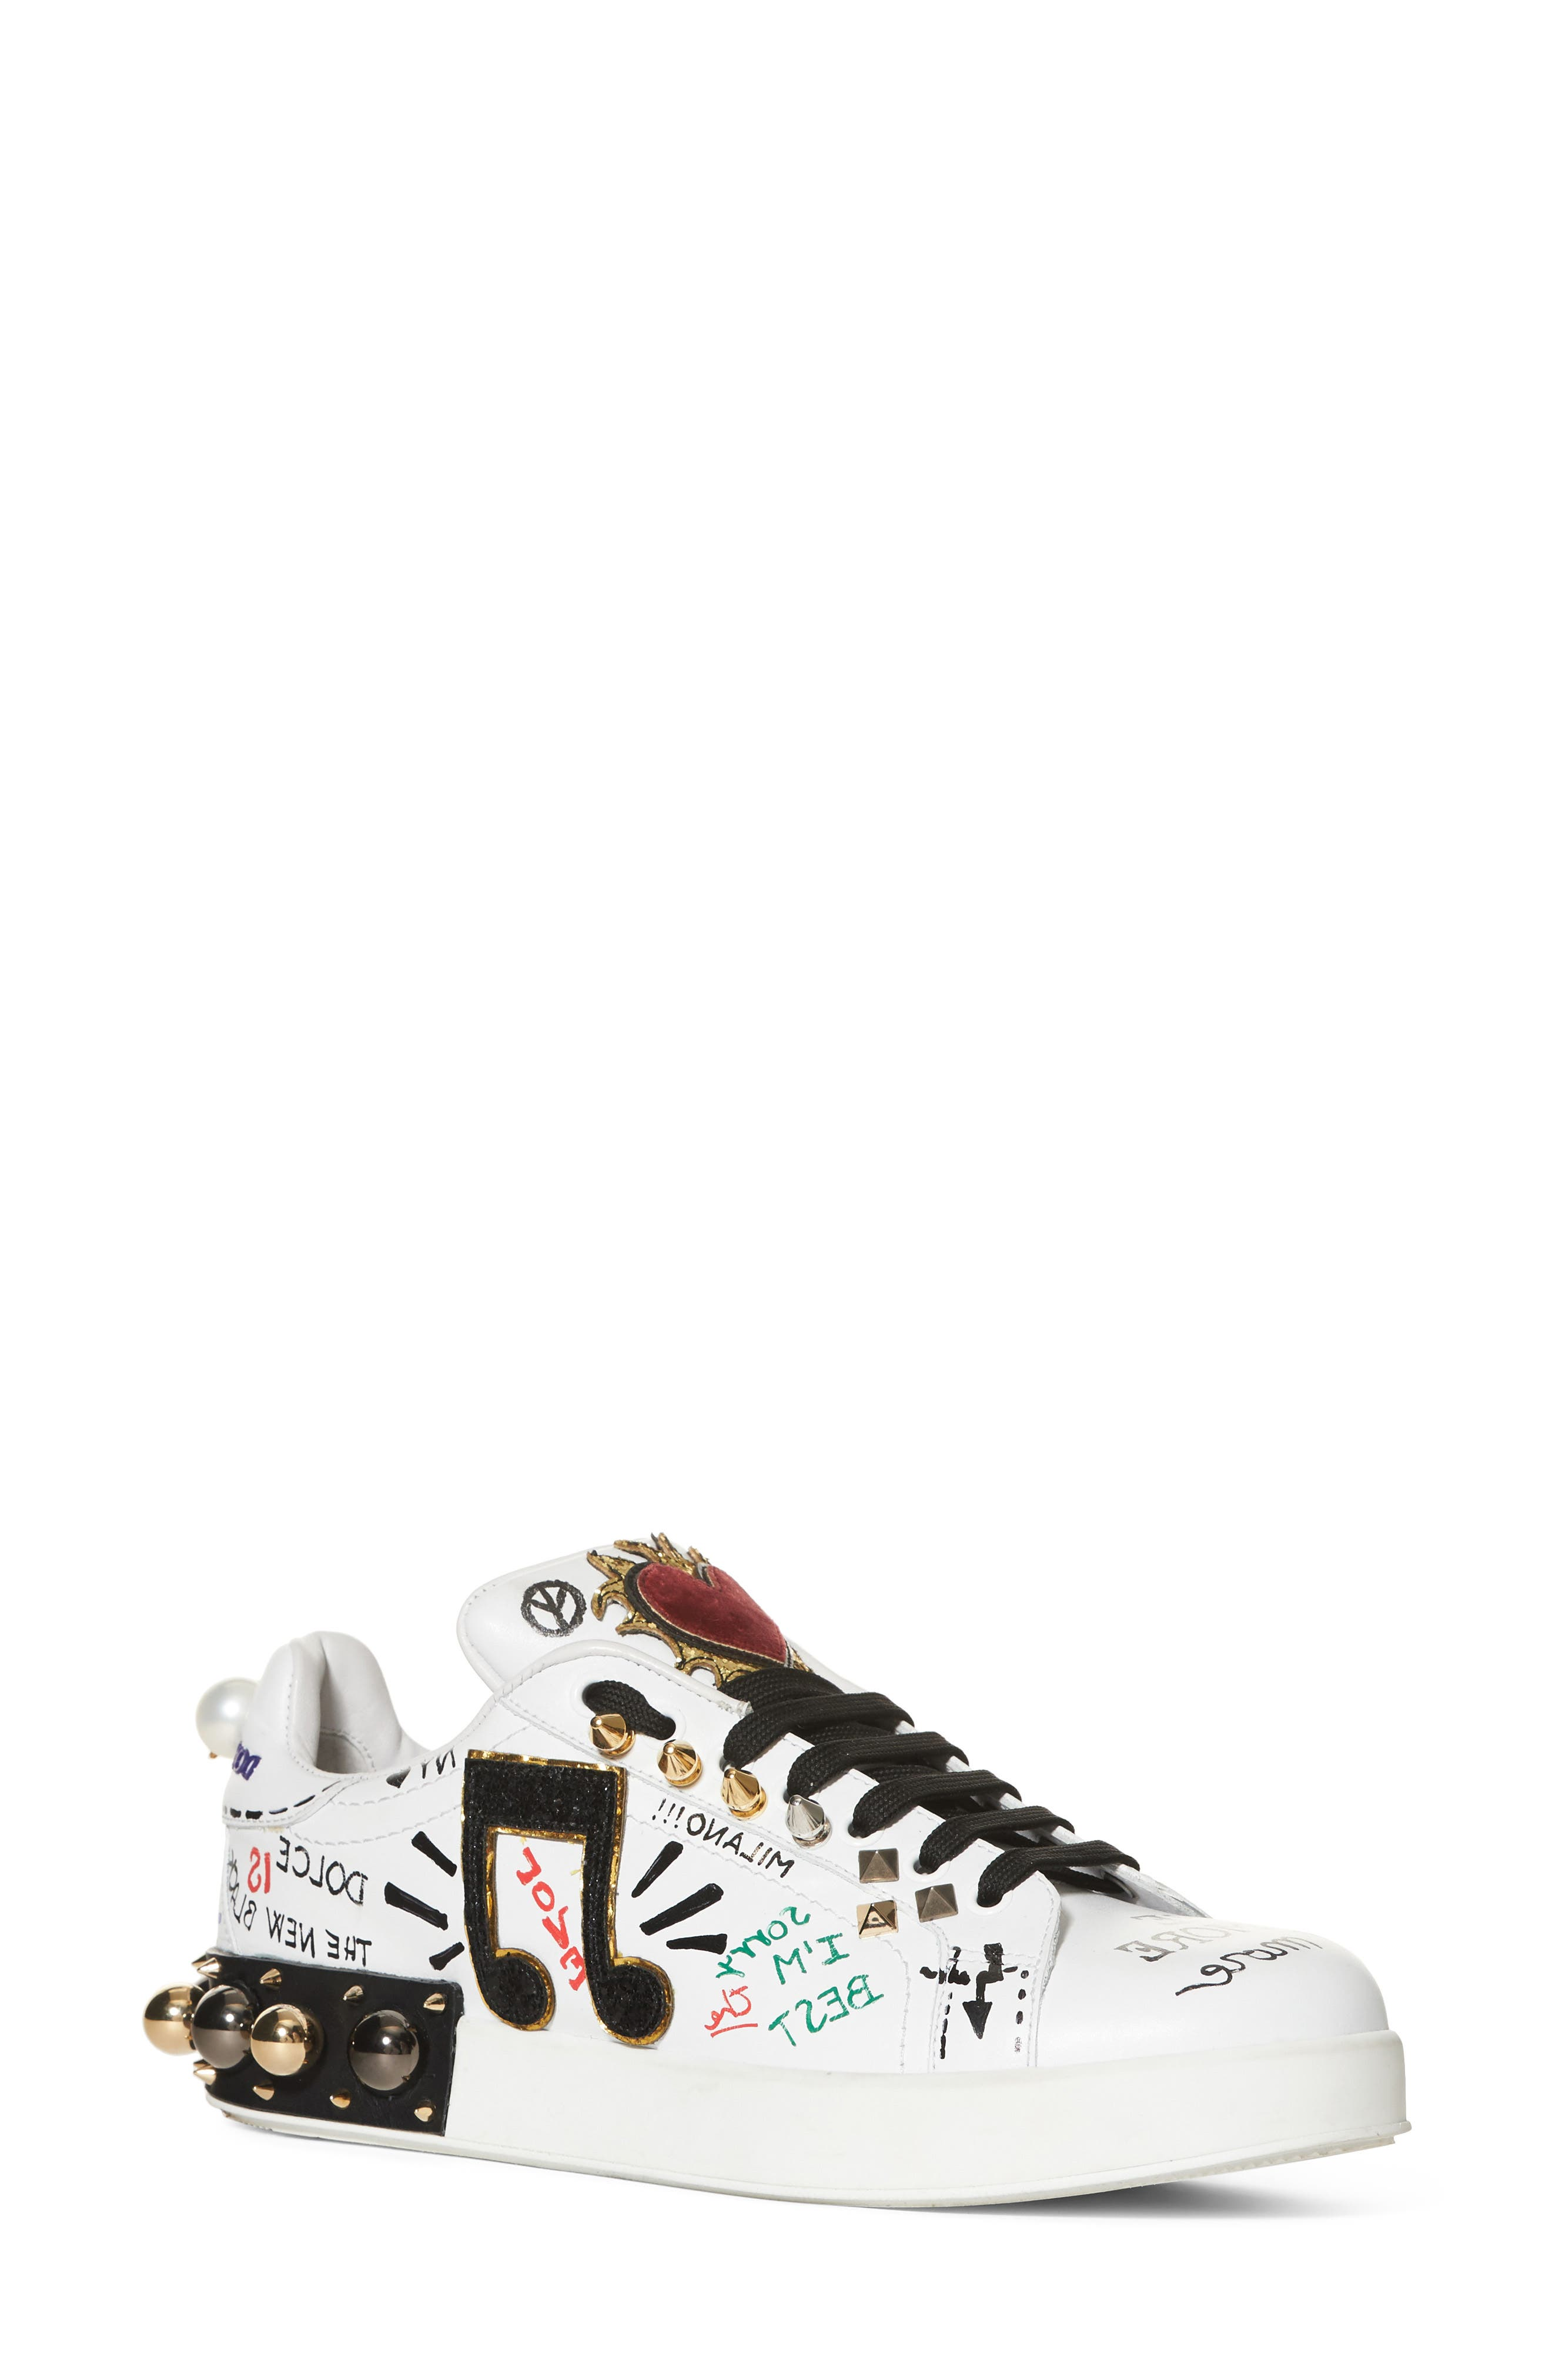 Dolce&Gabbana Mixed Media Sneaker (Women)